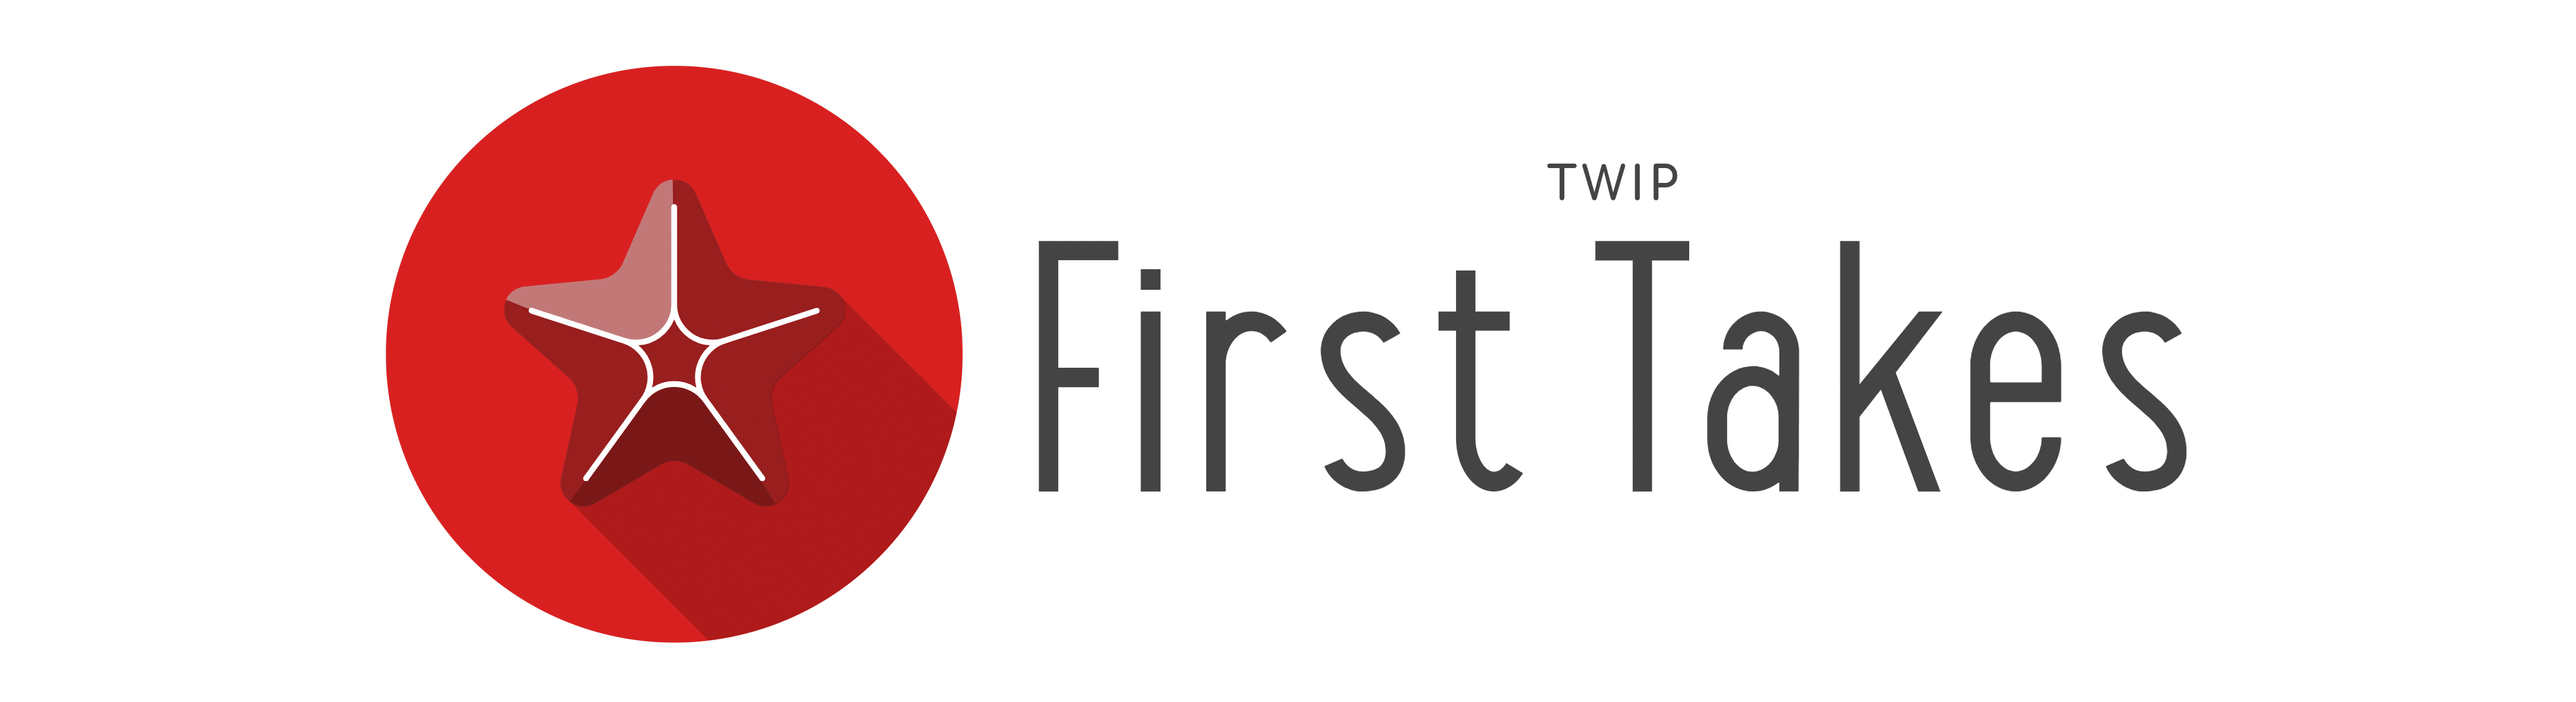 TWIP First Takes Logo